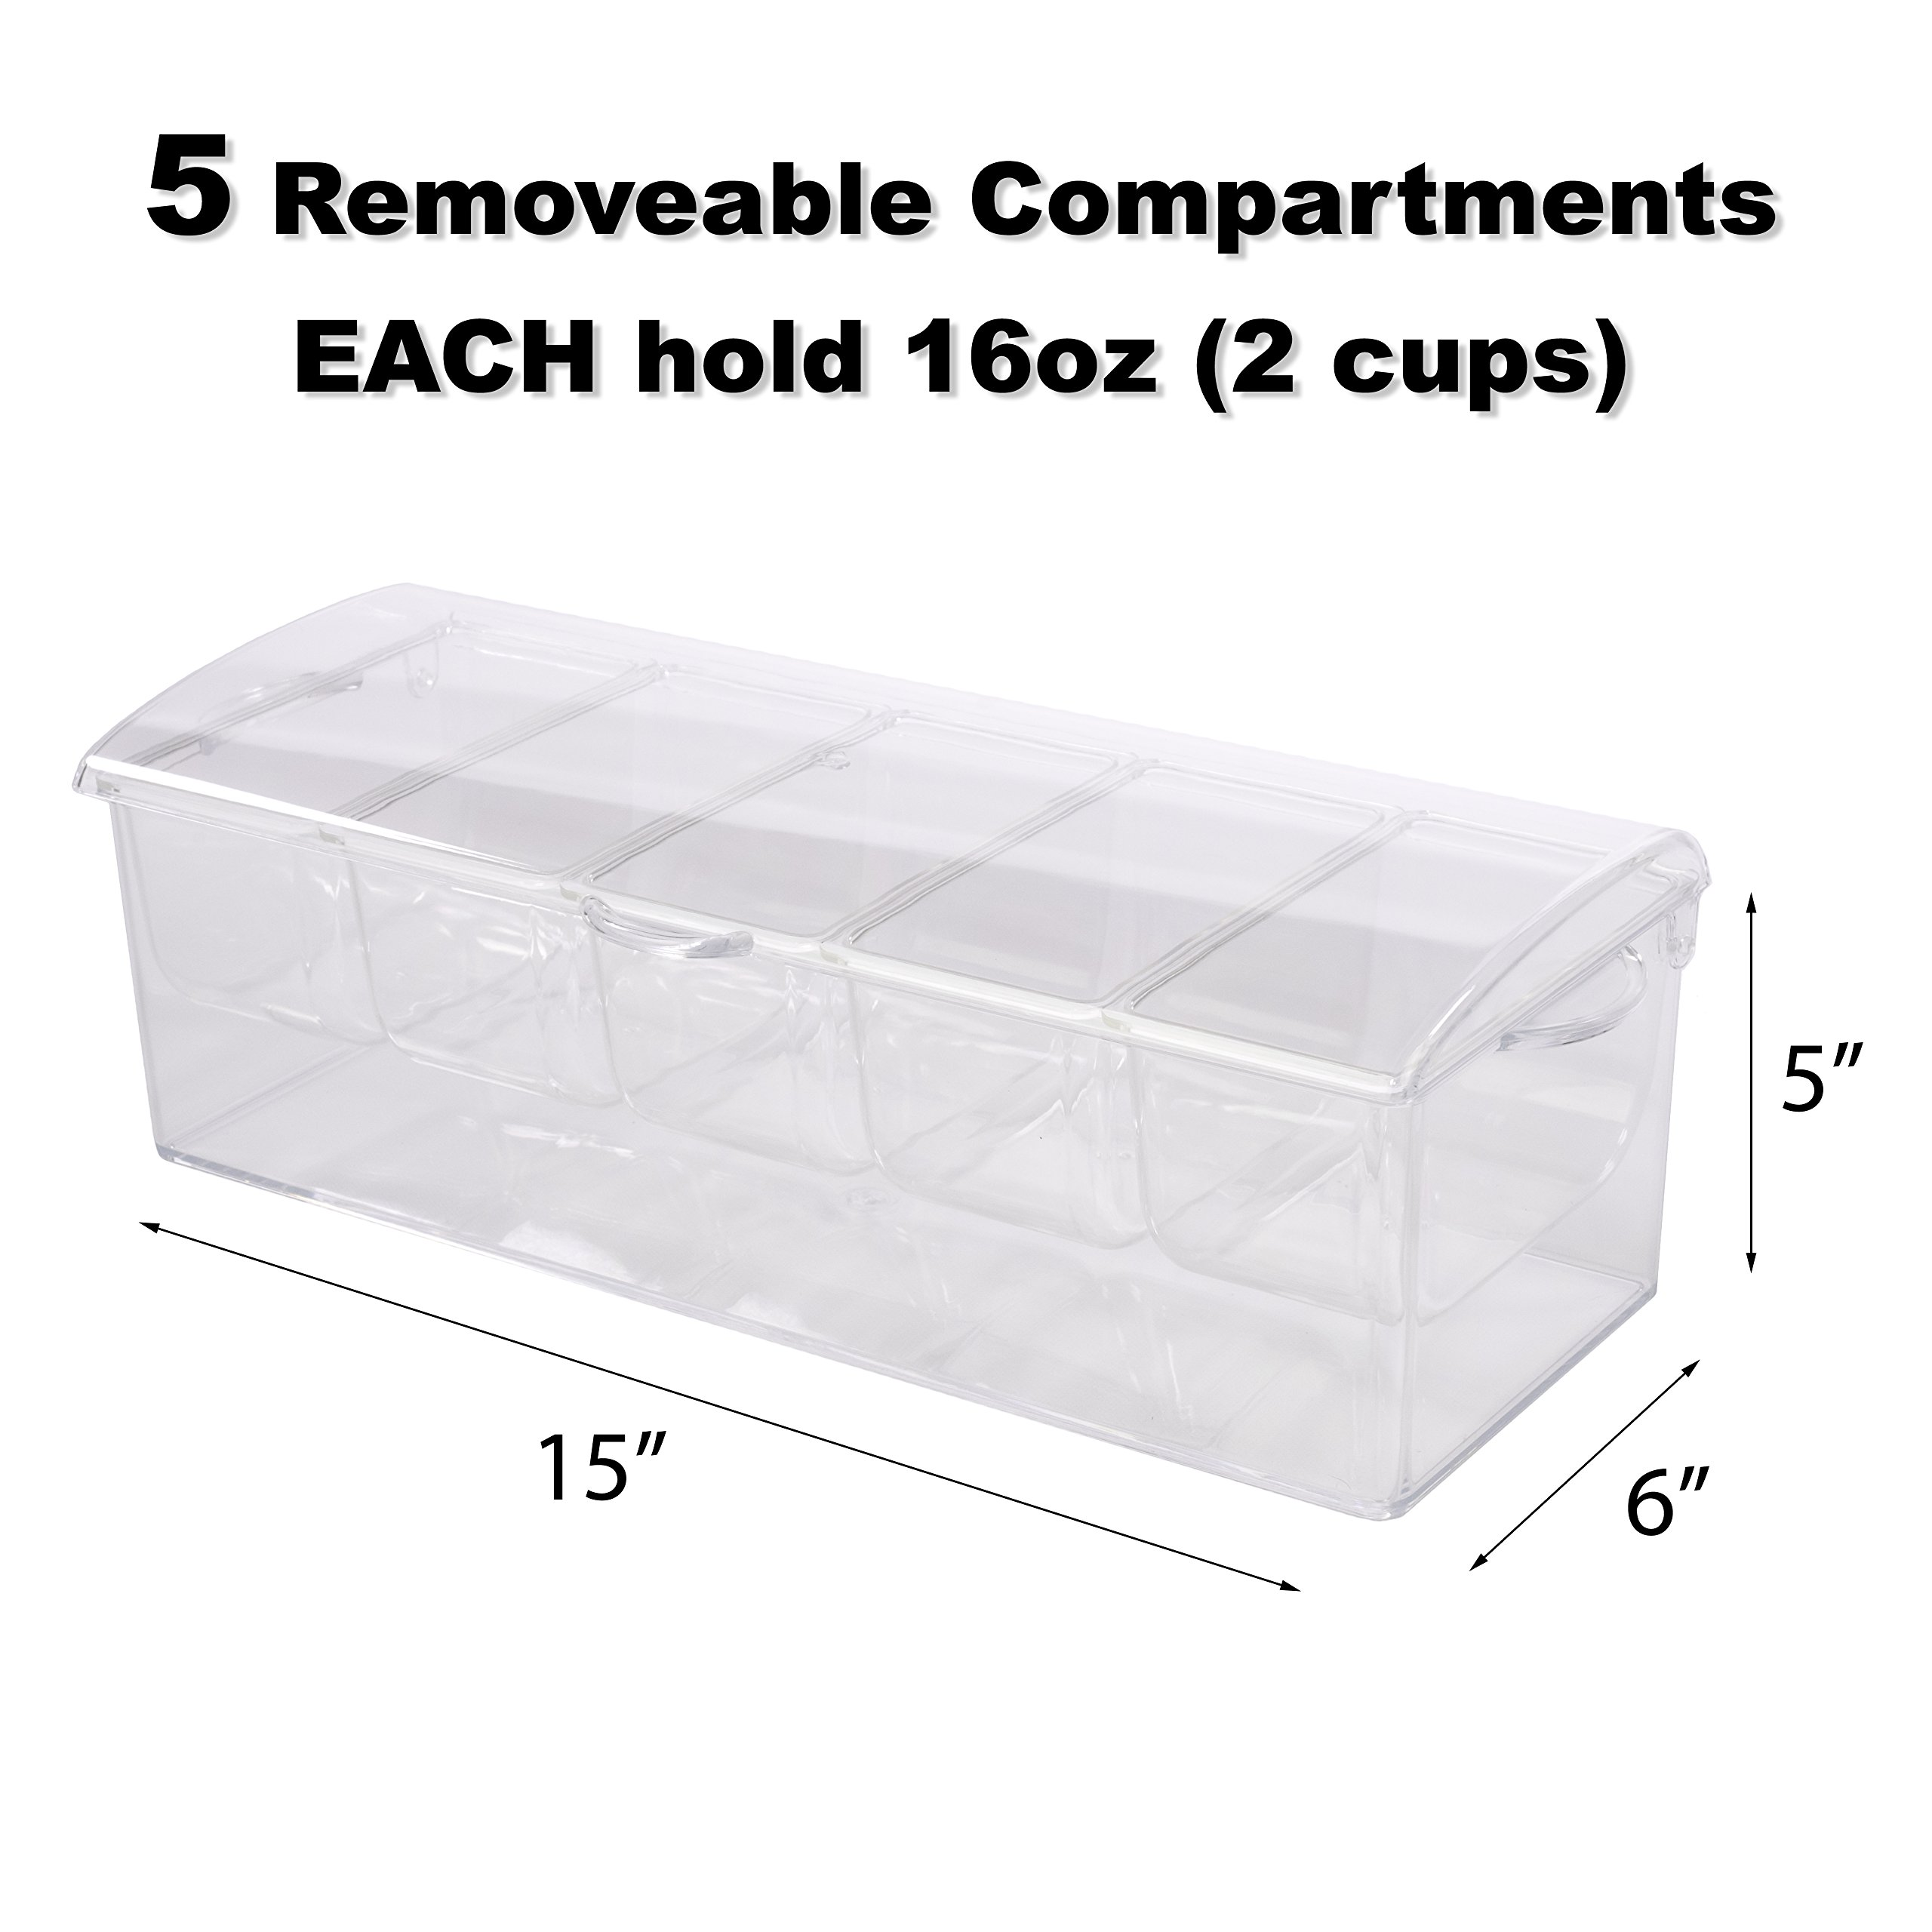 Adorn Home Ice Chilled Large Condiment Server | 5 Compartment on Ice Caddy | 5 Removable Dishes with over 2 Cup Capacity Each with Hinged Lid | Crystal Clear Plasic by Adorn Home Essentials (Image #6)